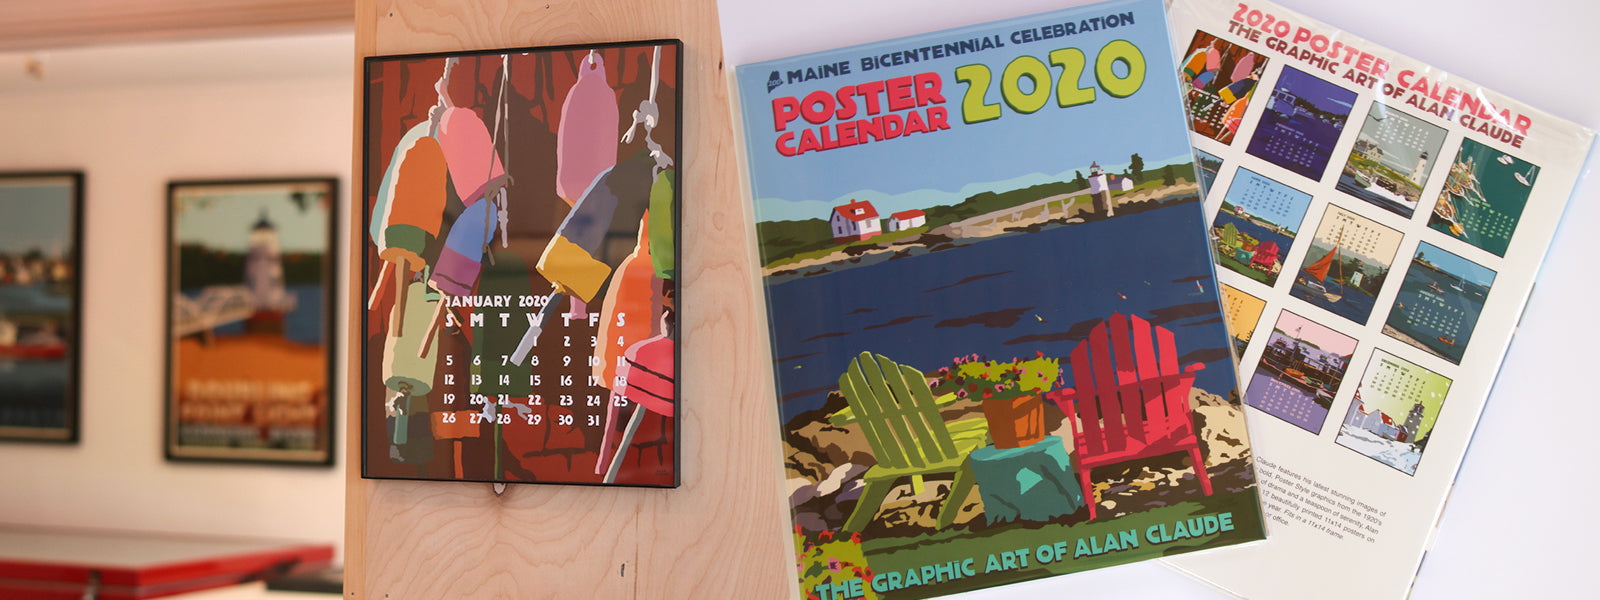 2020 POSTER Art Calendar 11x14 retro vintage art poster style by Maine Artist Alan Claude - SOLD OUT!